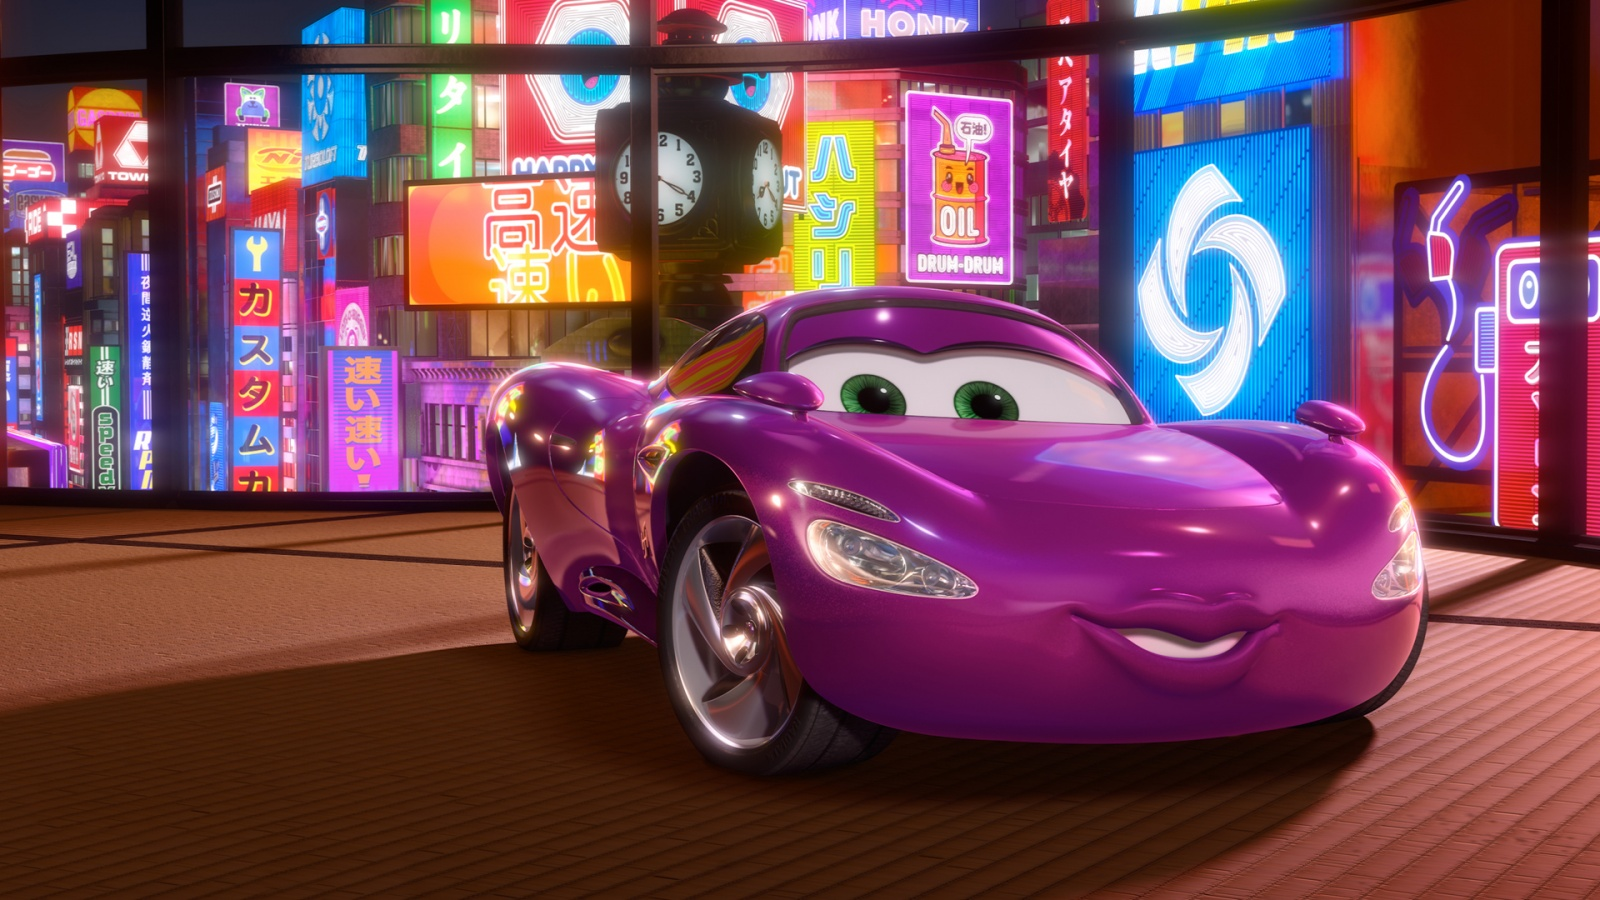 The Fast Car In The World >> Holley Shiftwell in Cars 2 Movie Wallpapers in jpg format for free download